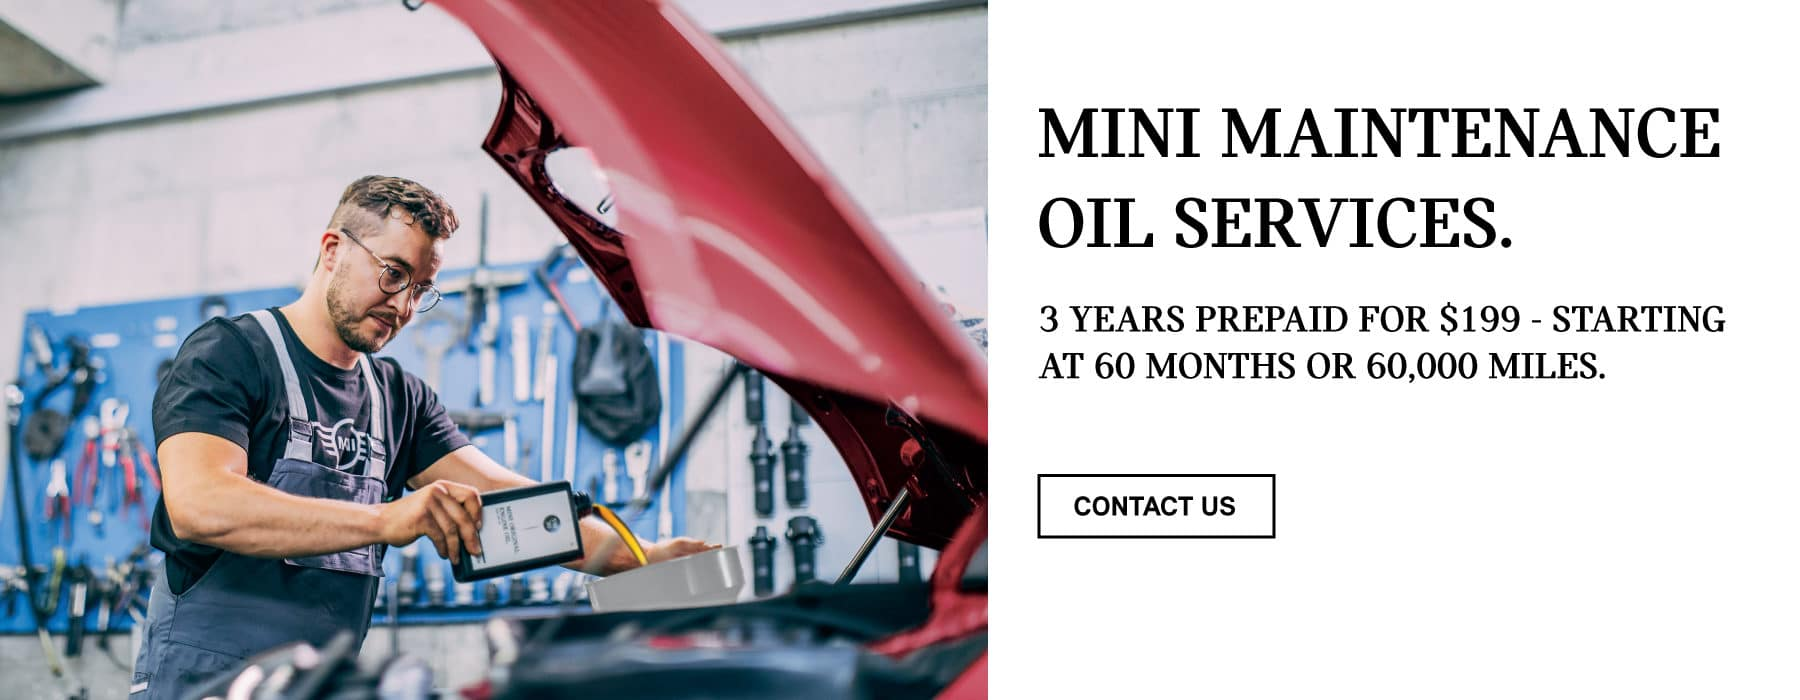 MINI MAINTENACE OIL SERVICES. PREPAY $199 FOR UNLIMITED OIL CHANGES FOR 3 YEARS.